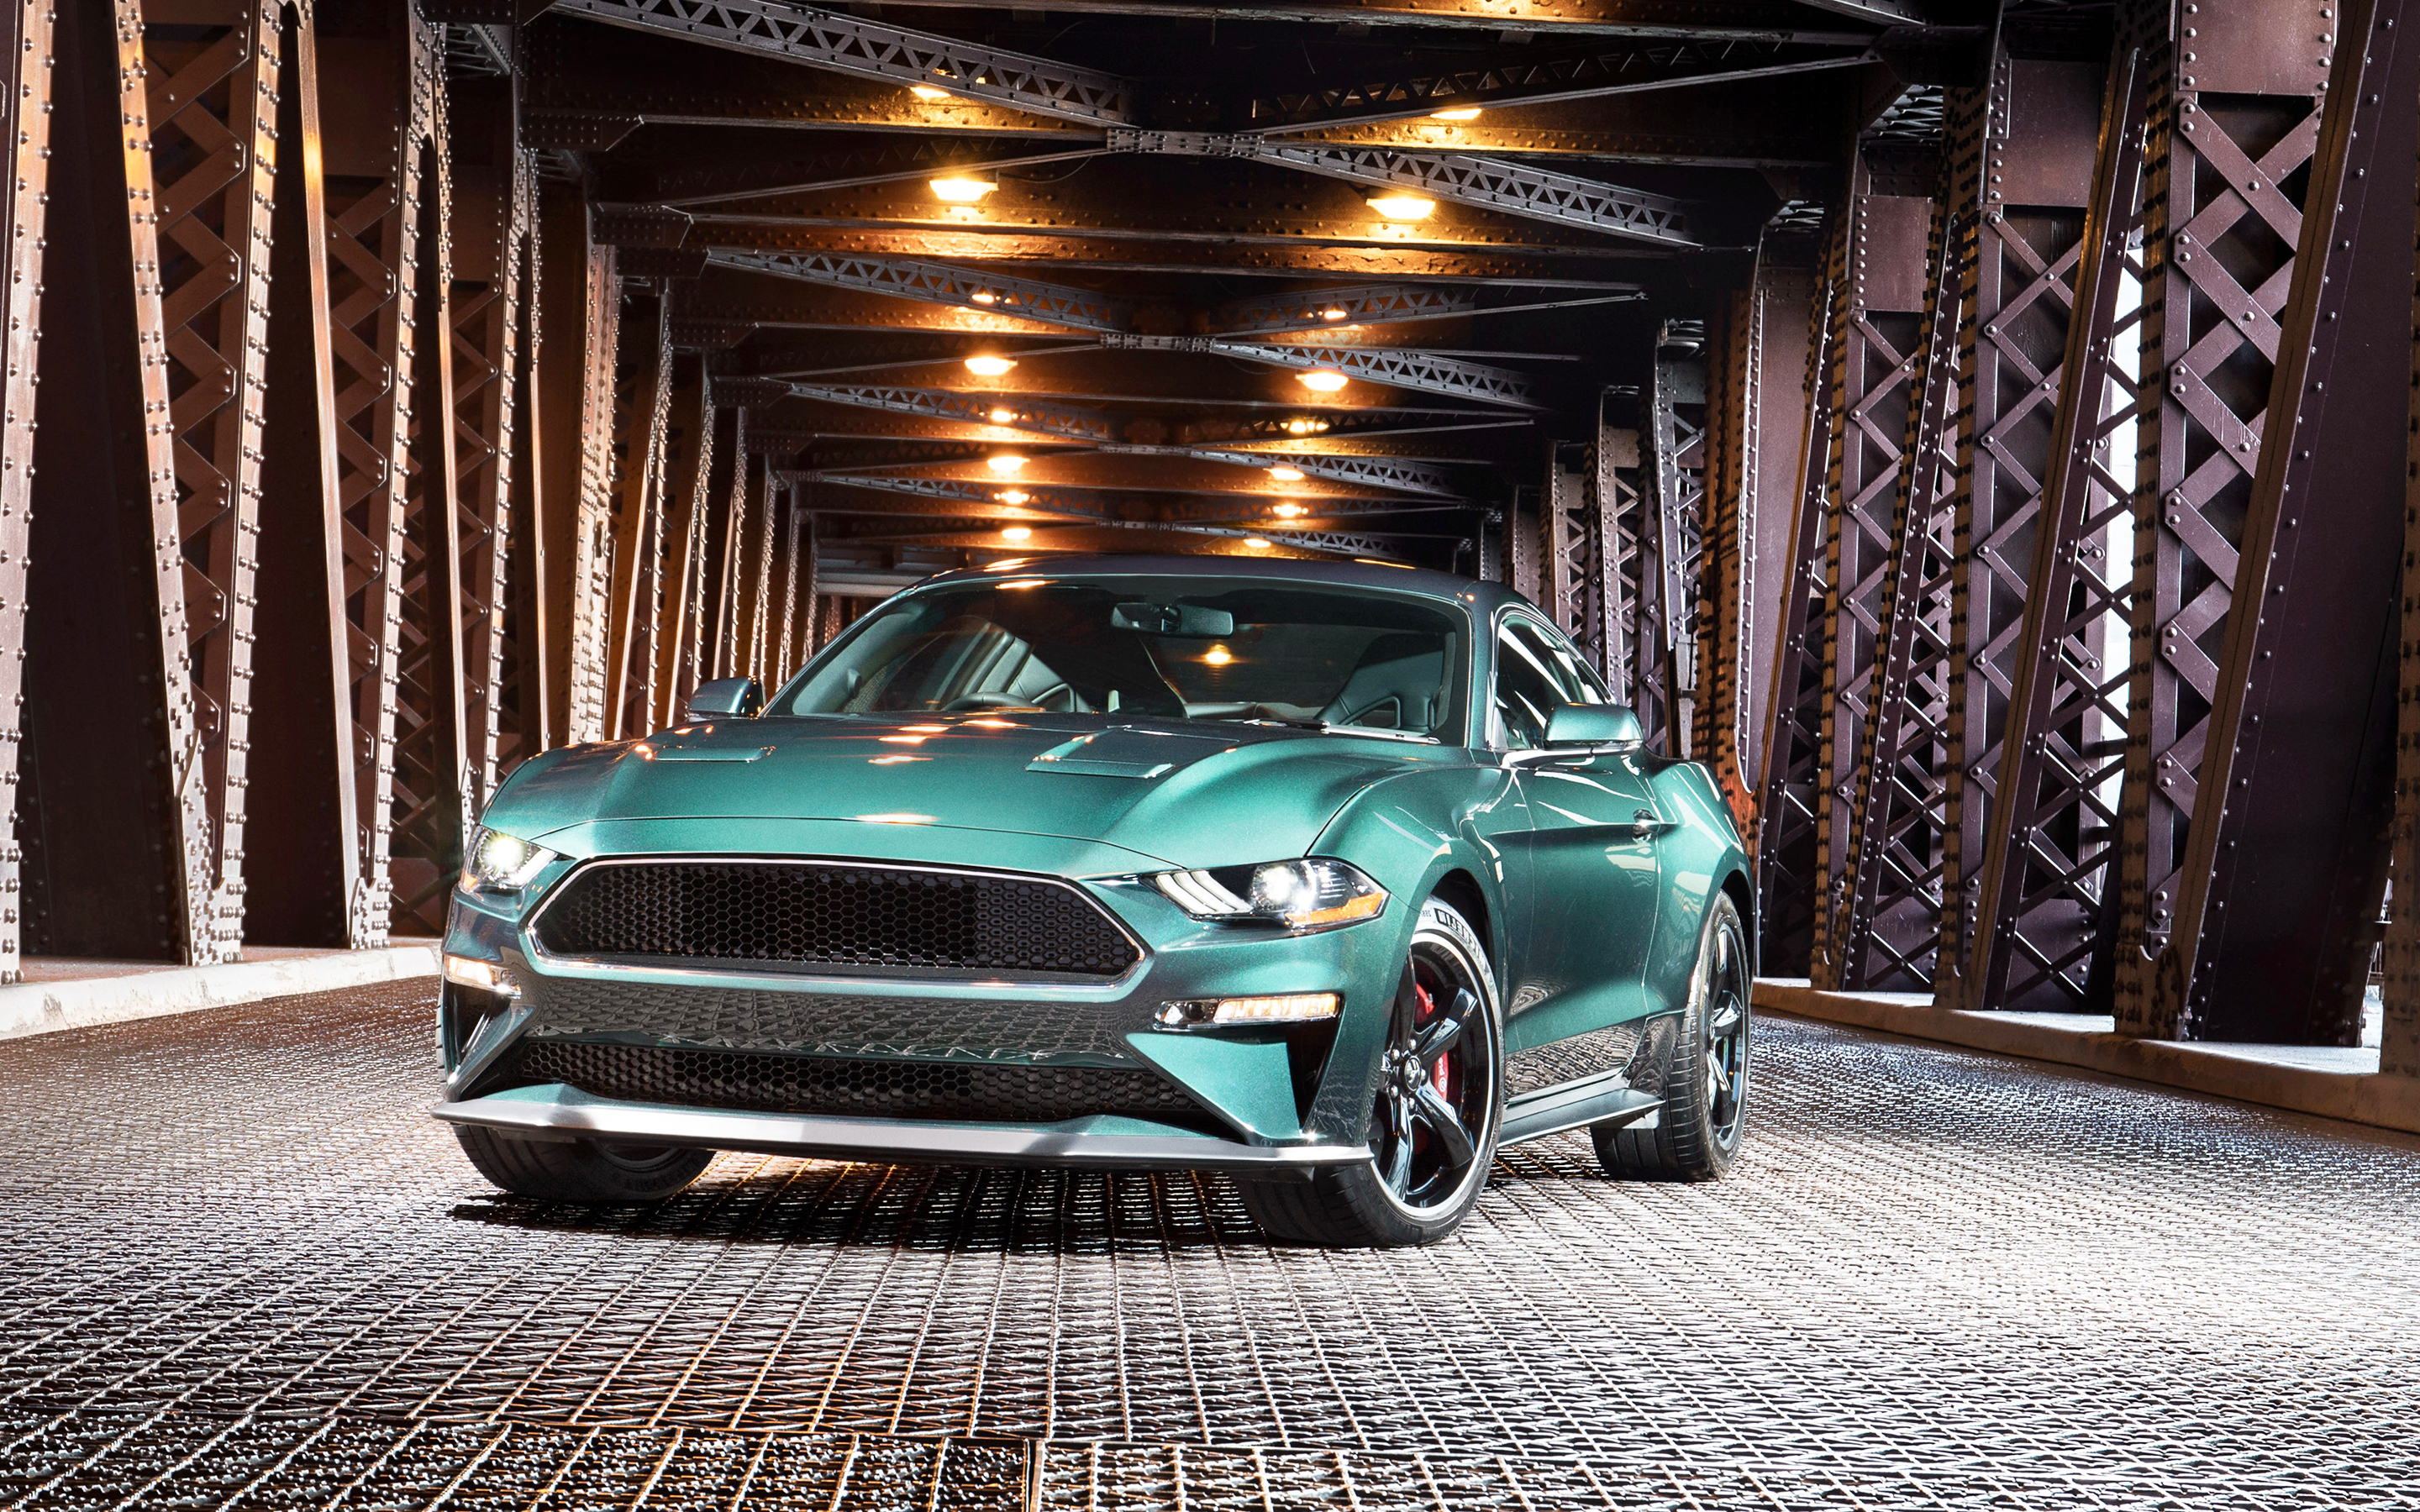 Ford Mustang Bullitt Backgrounds